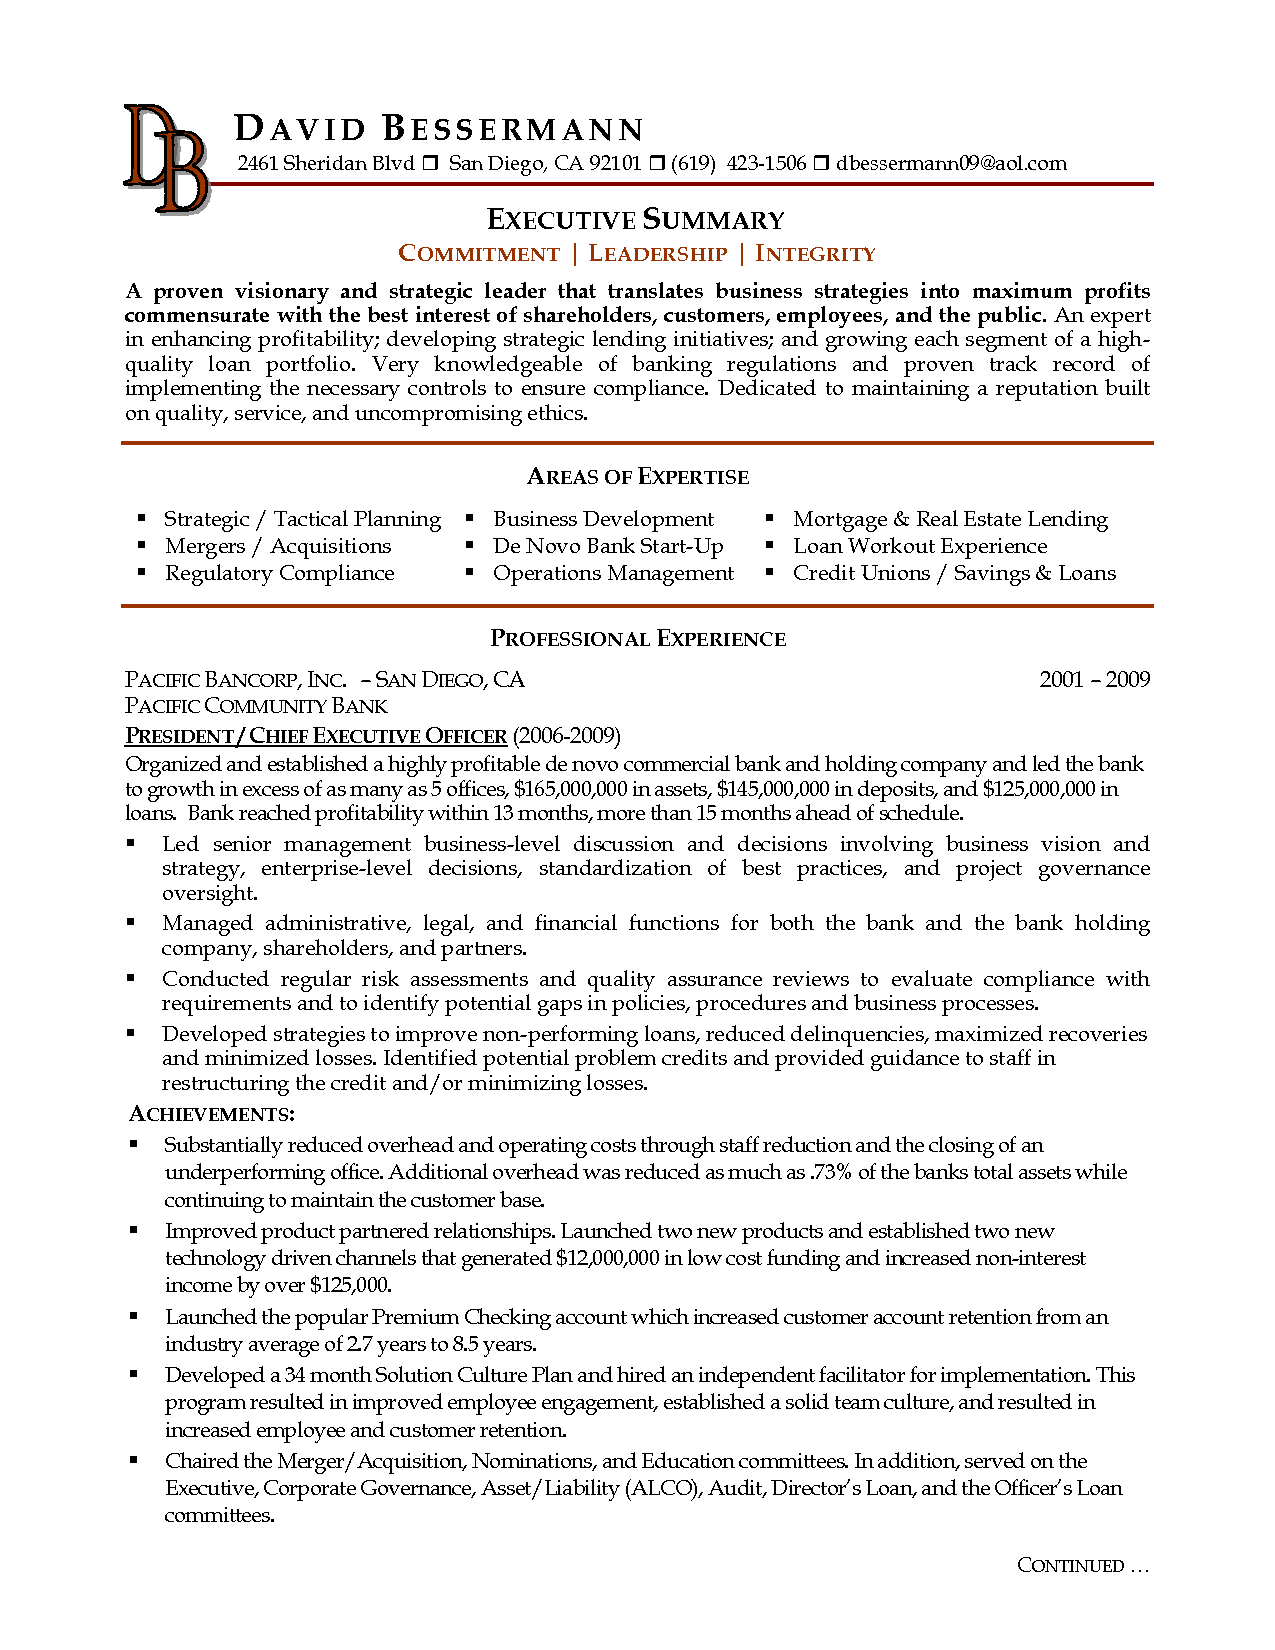 Resume Summary Examples Template Example For Students Professional Lwngpdcs  Executive Resume Examples And Samples